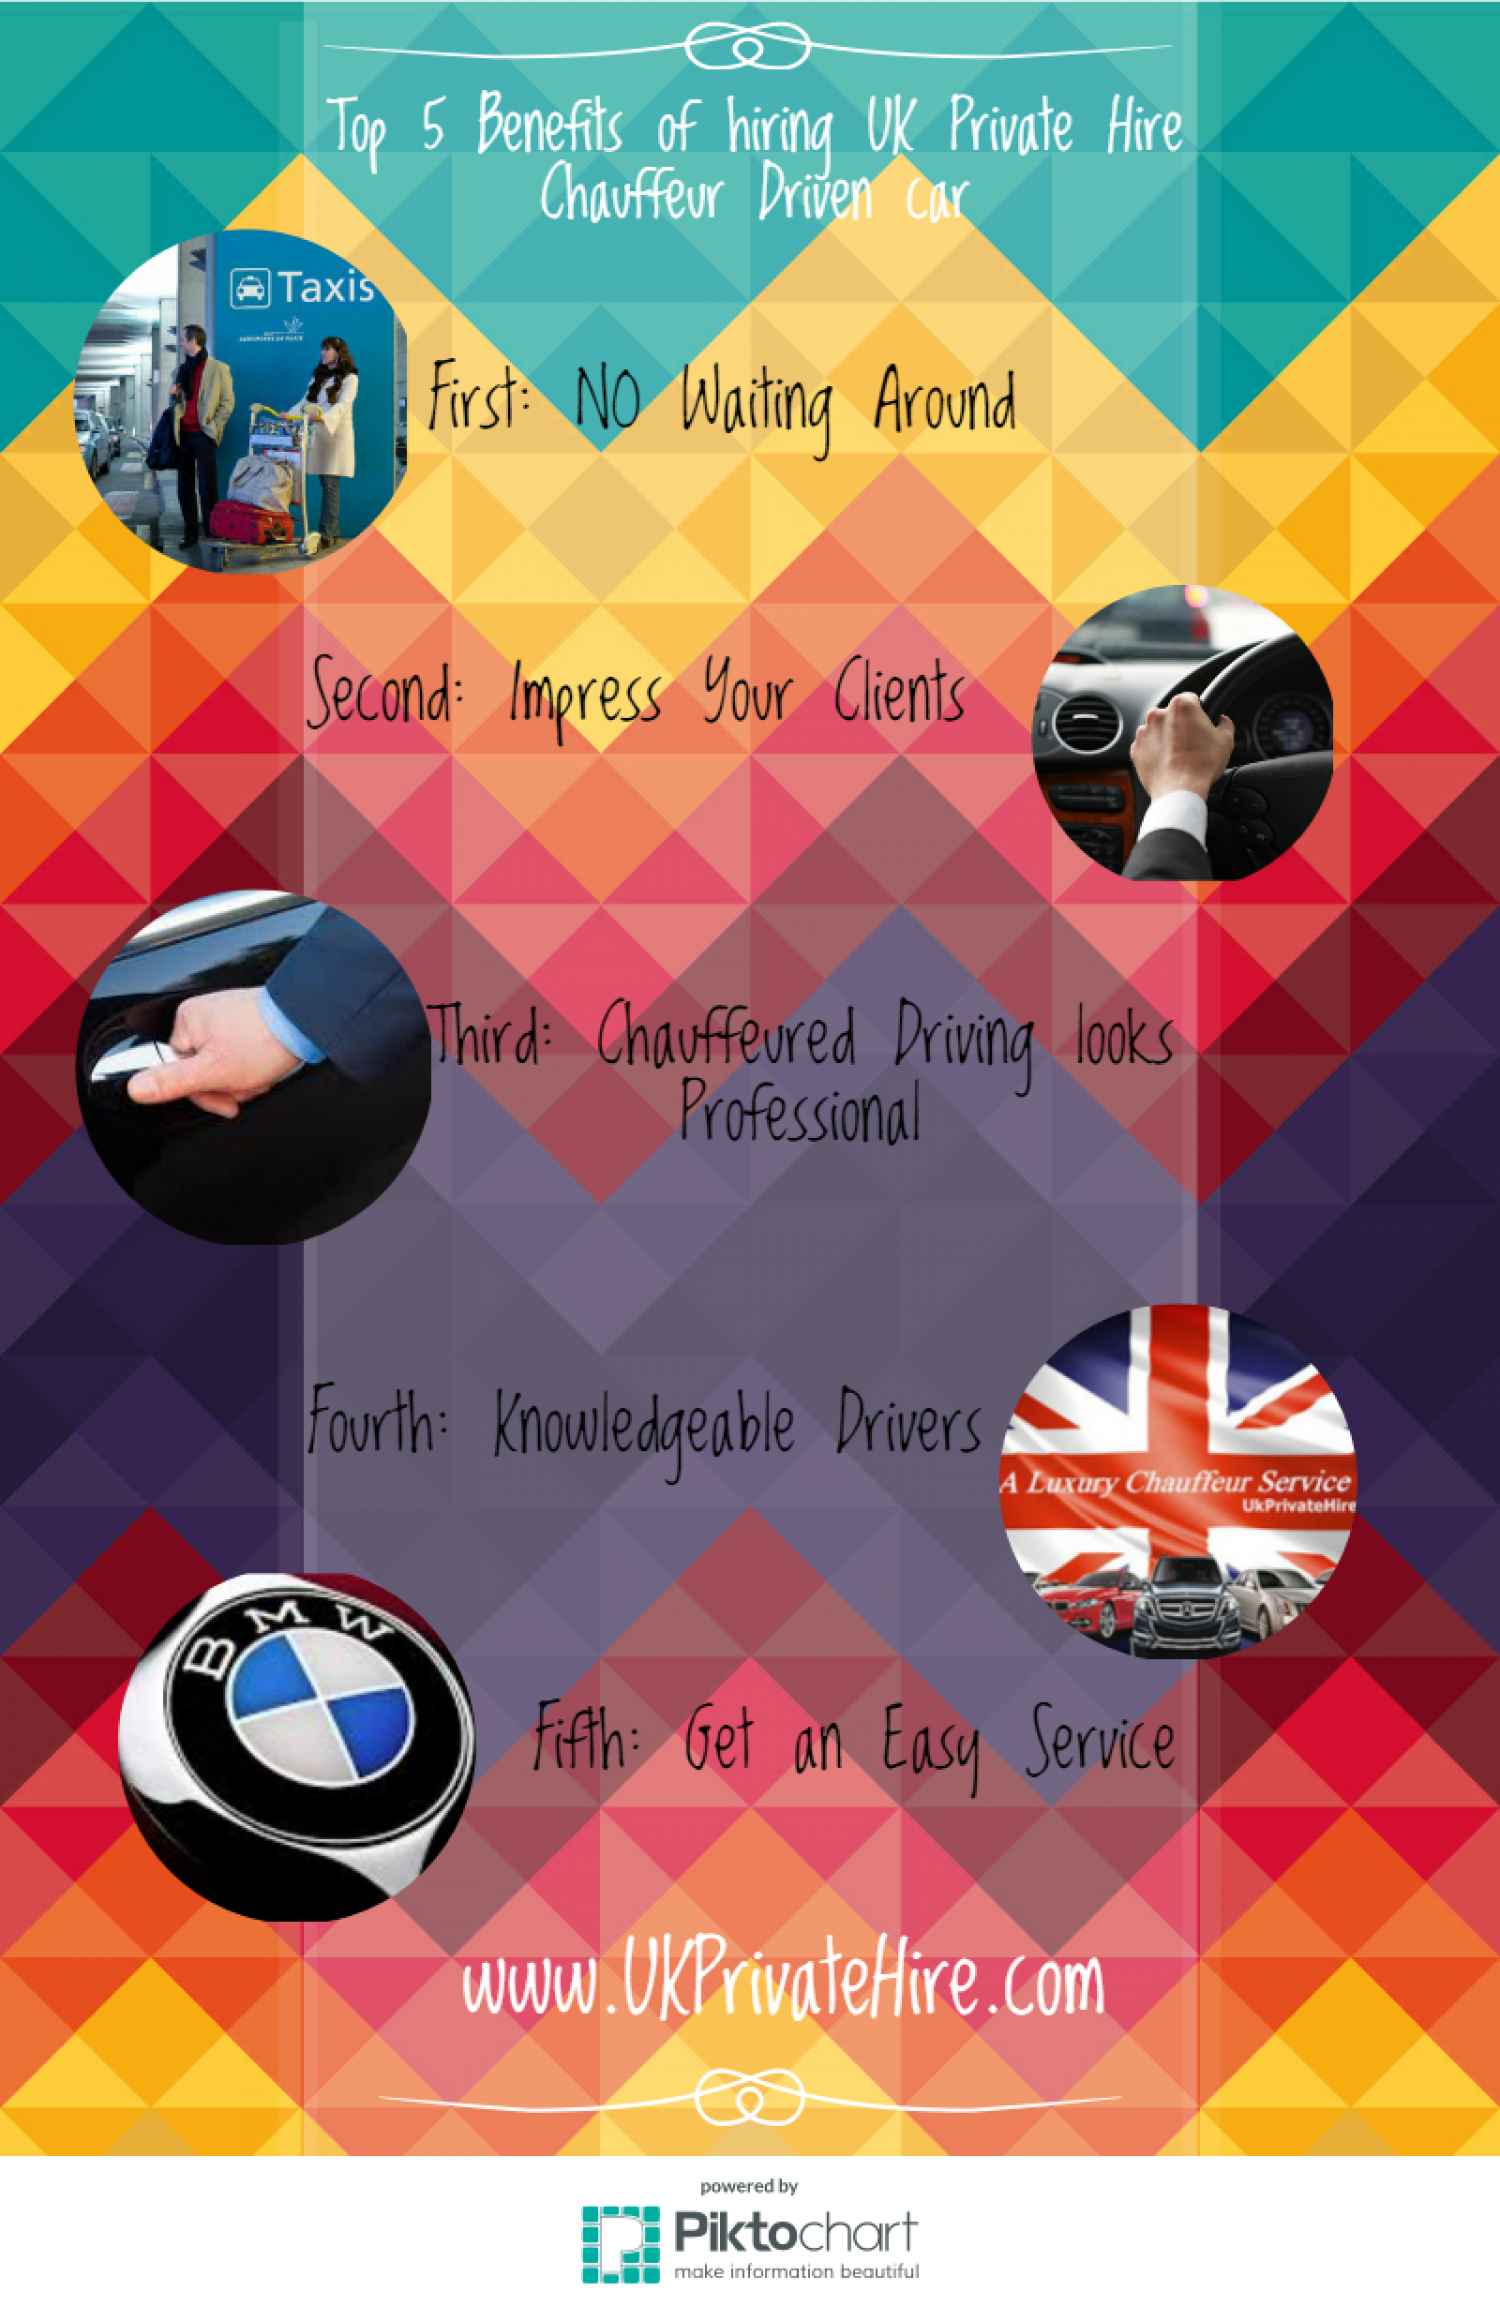 Top 5 Benefits of hiring UK Private Hire Chauffeur Driven car Infographic